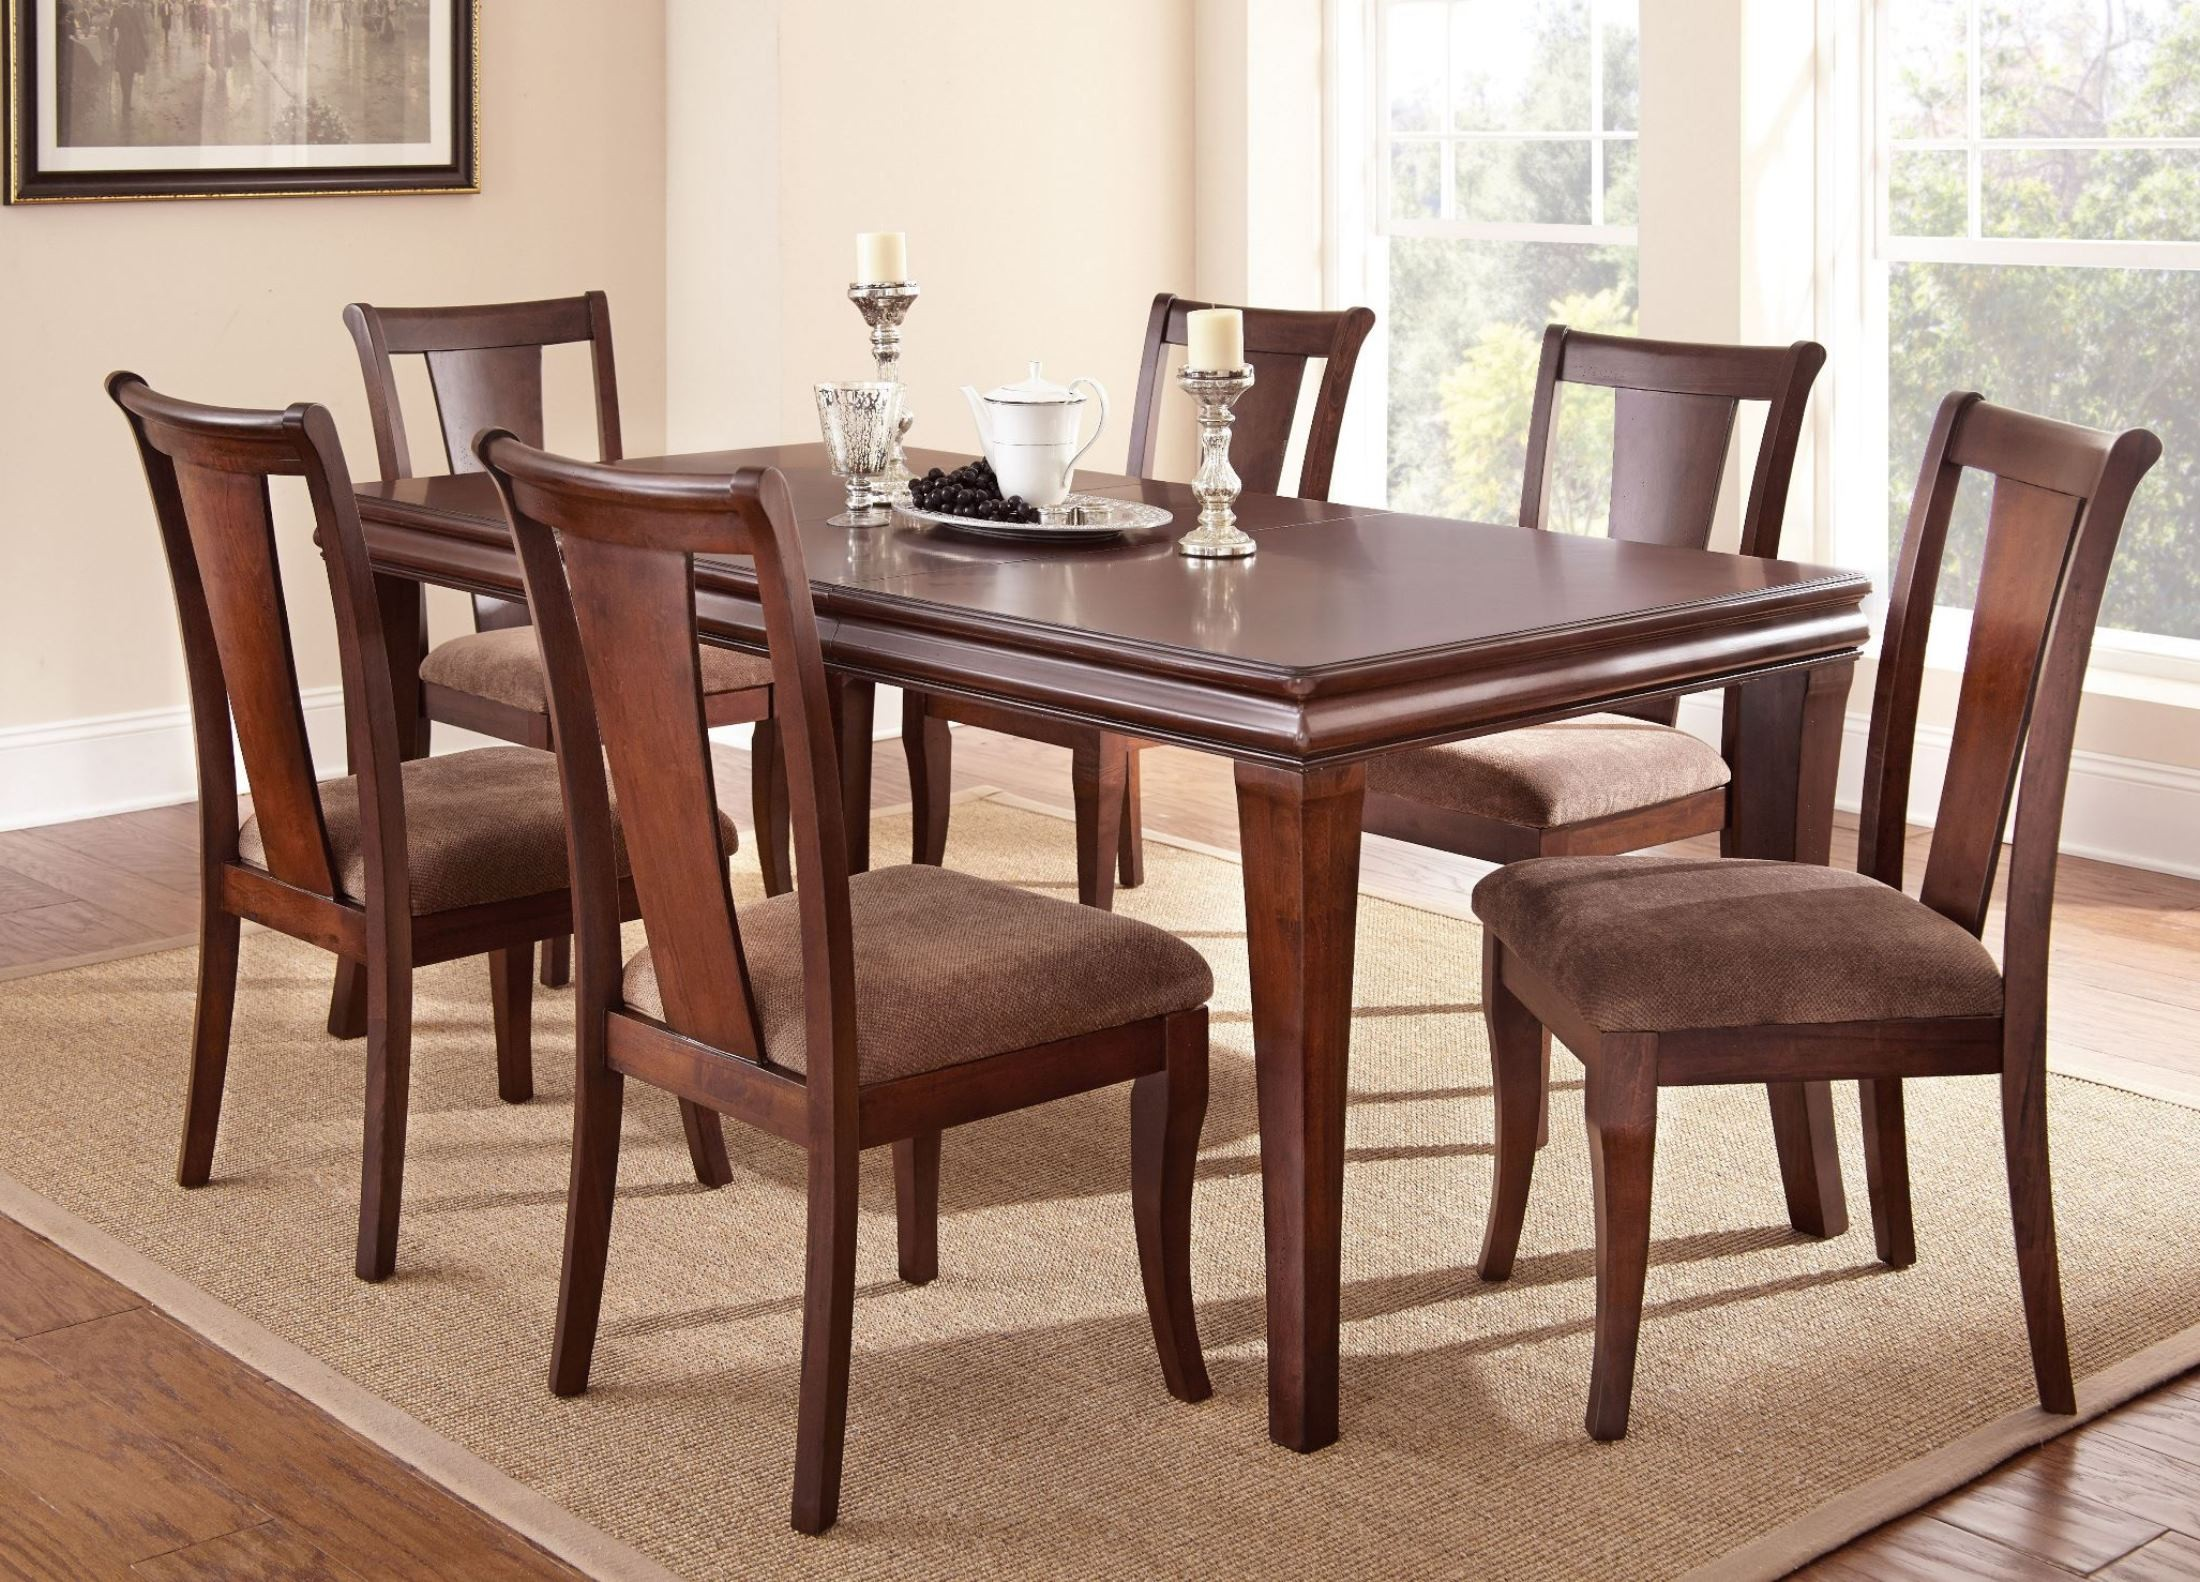 Aubrey medium brown extendable rectangular dining room set for Extendable dining set